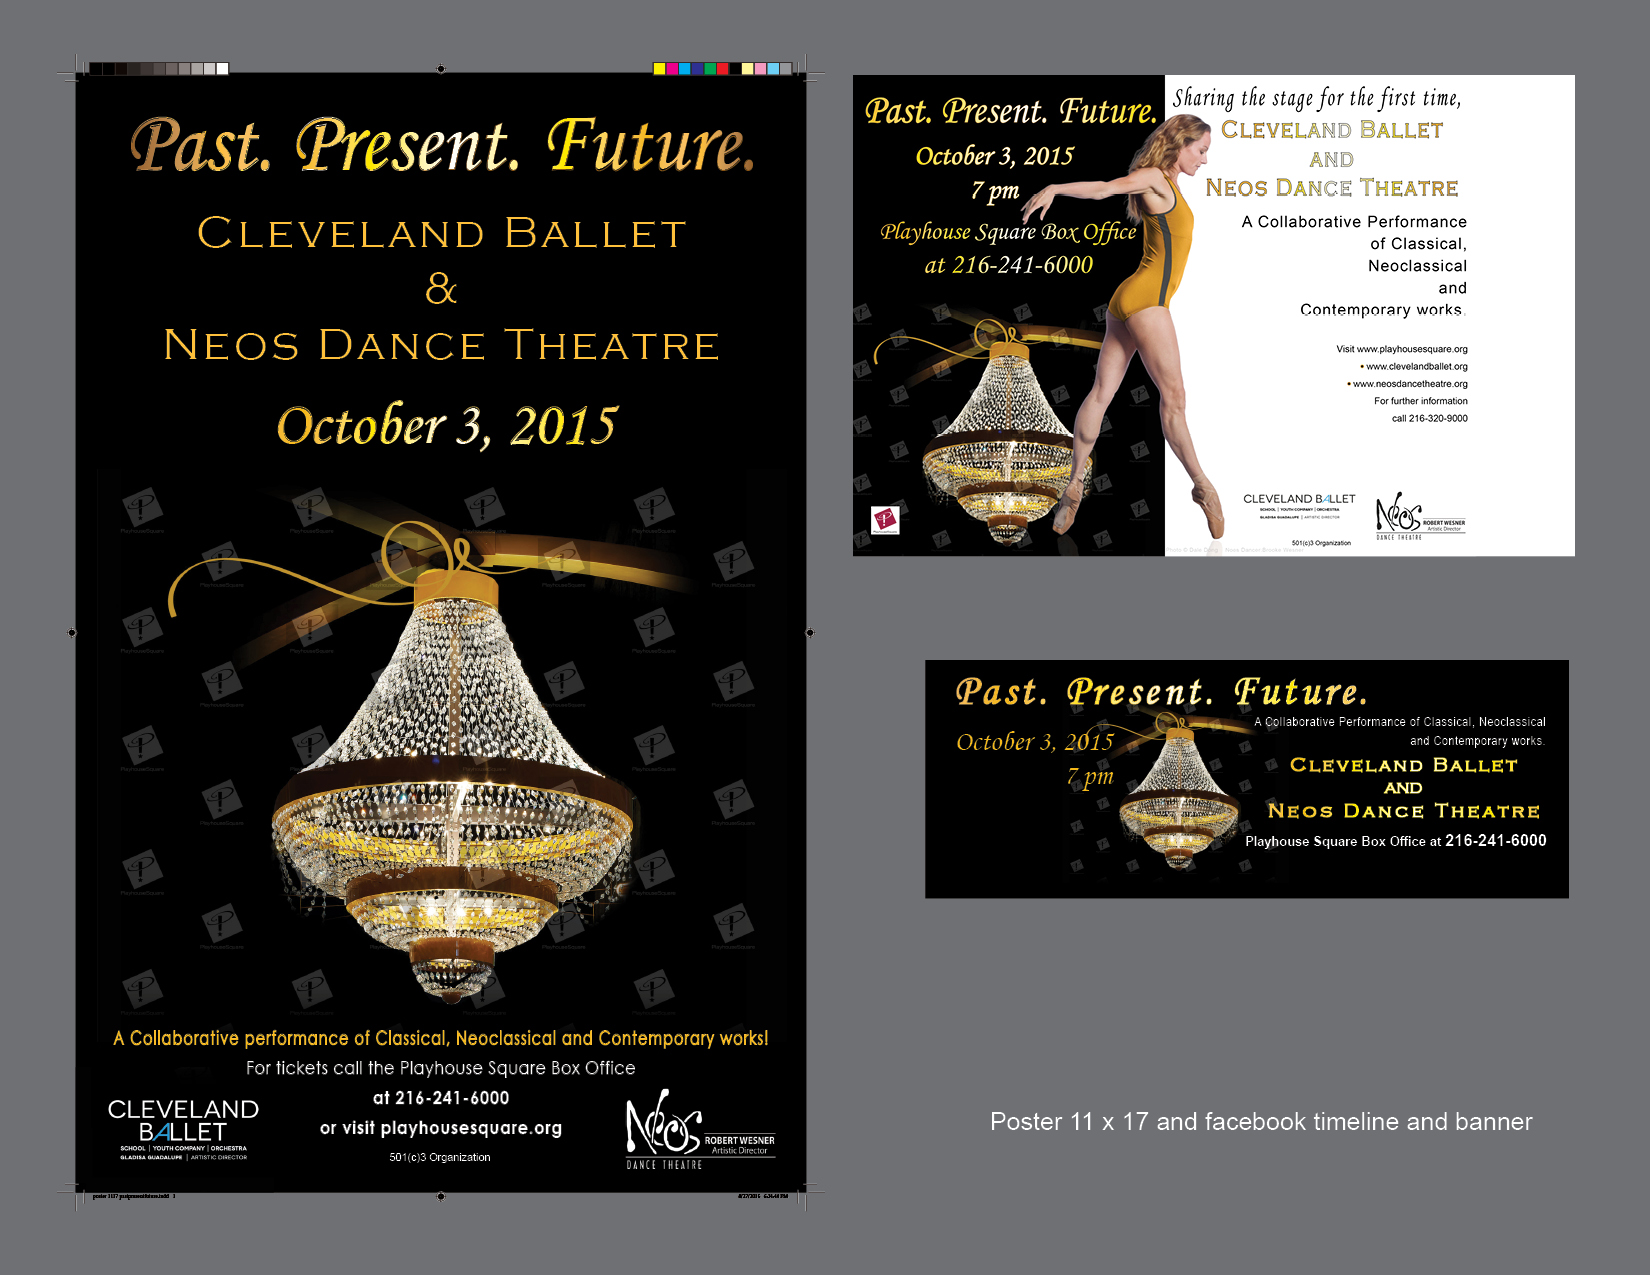 Neos with Cleveland Ballet poster